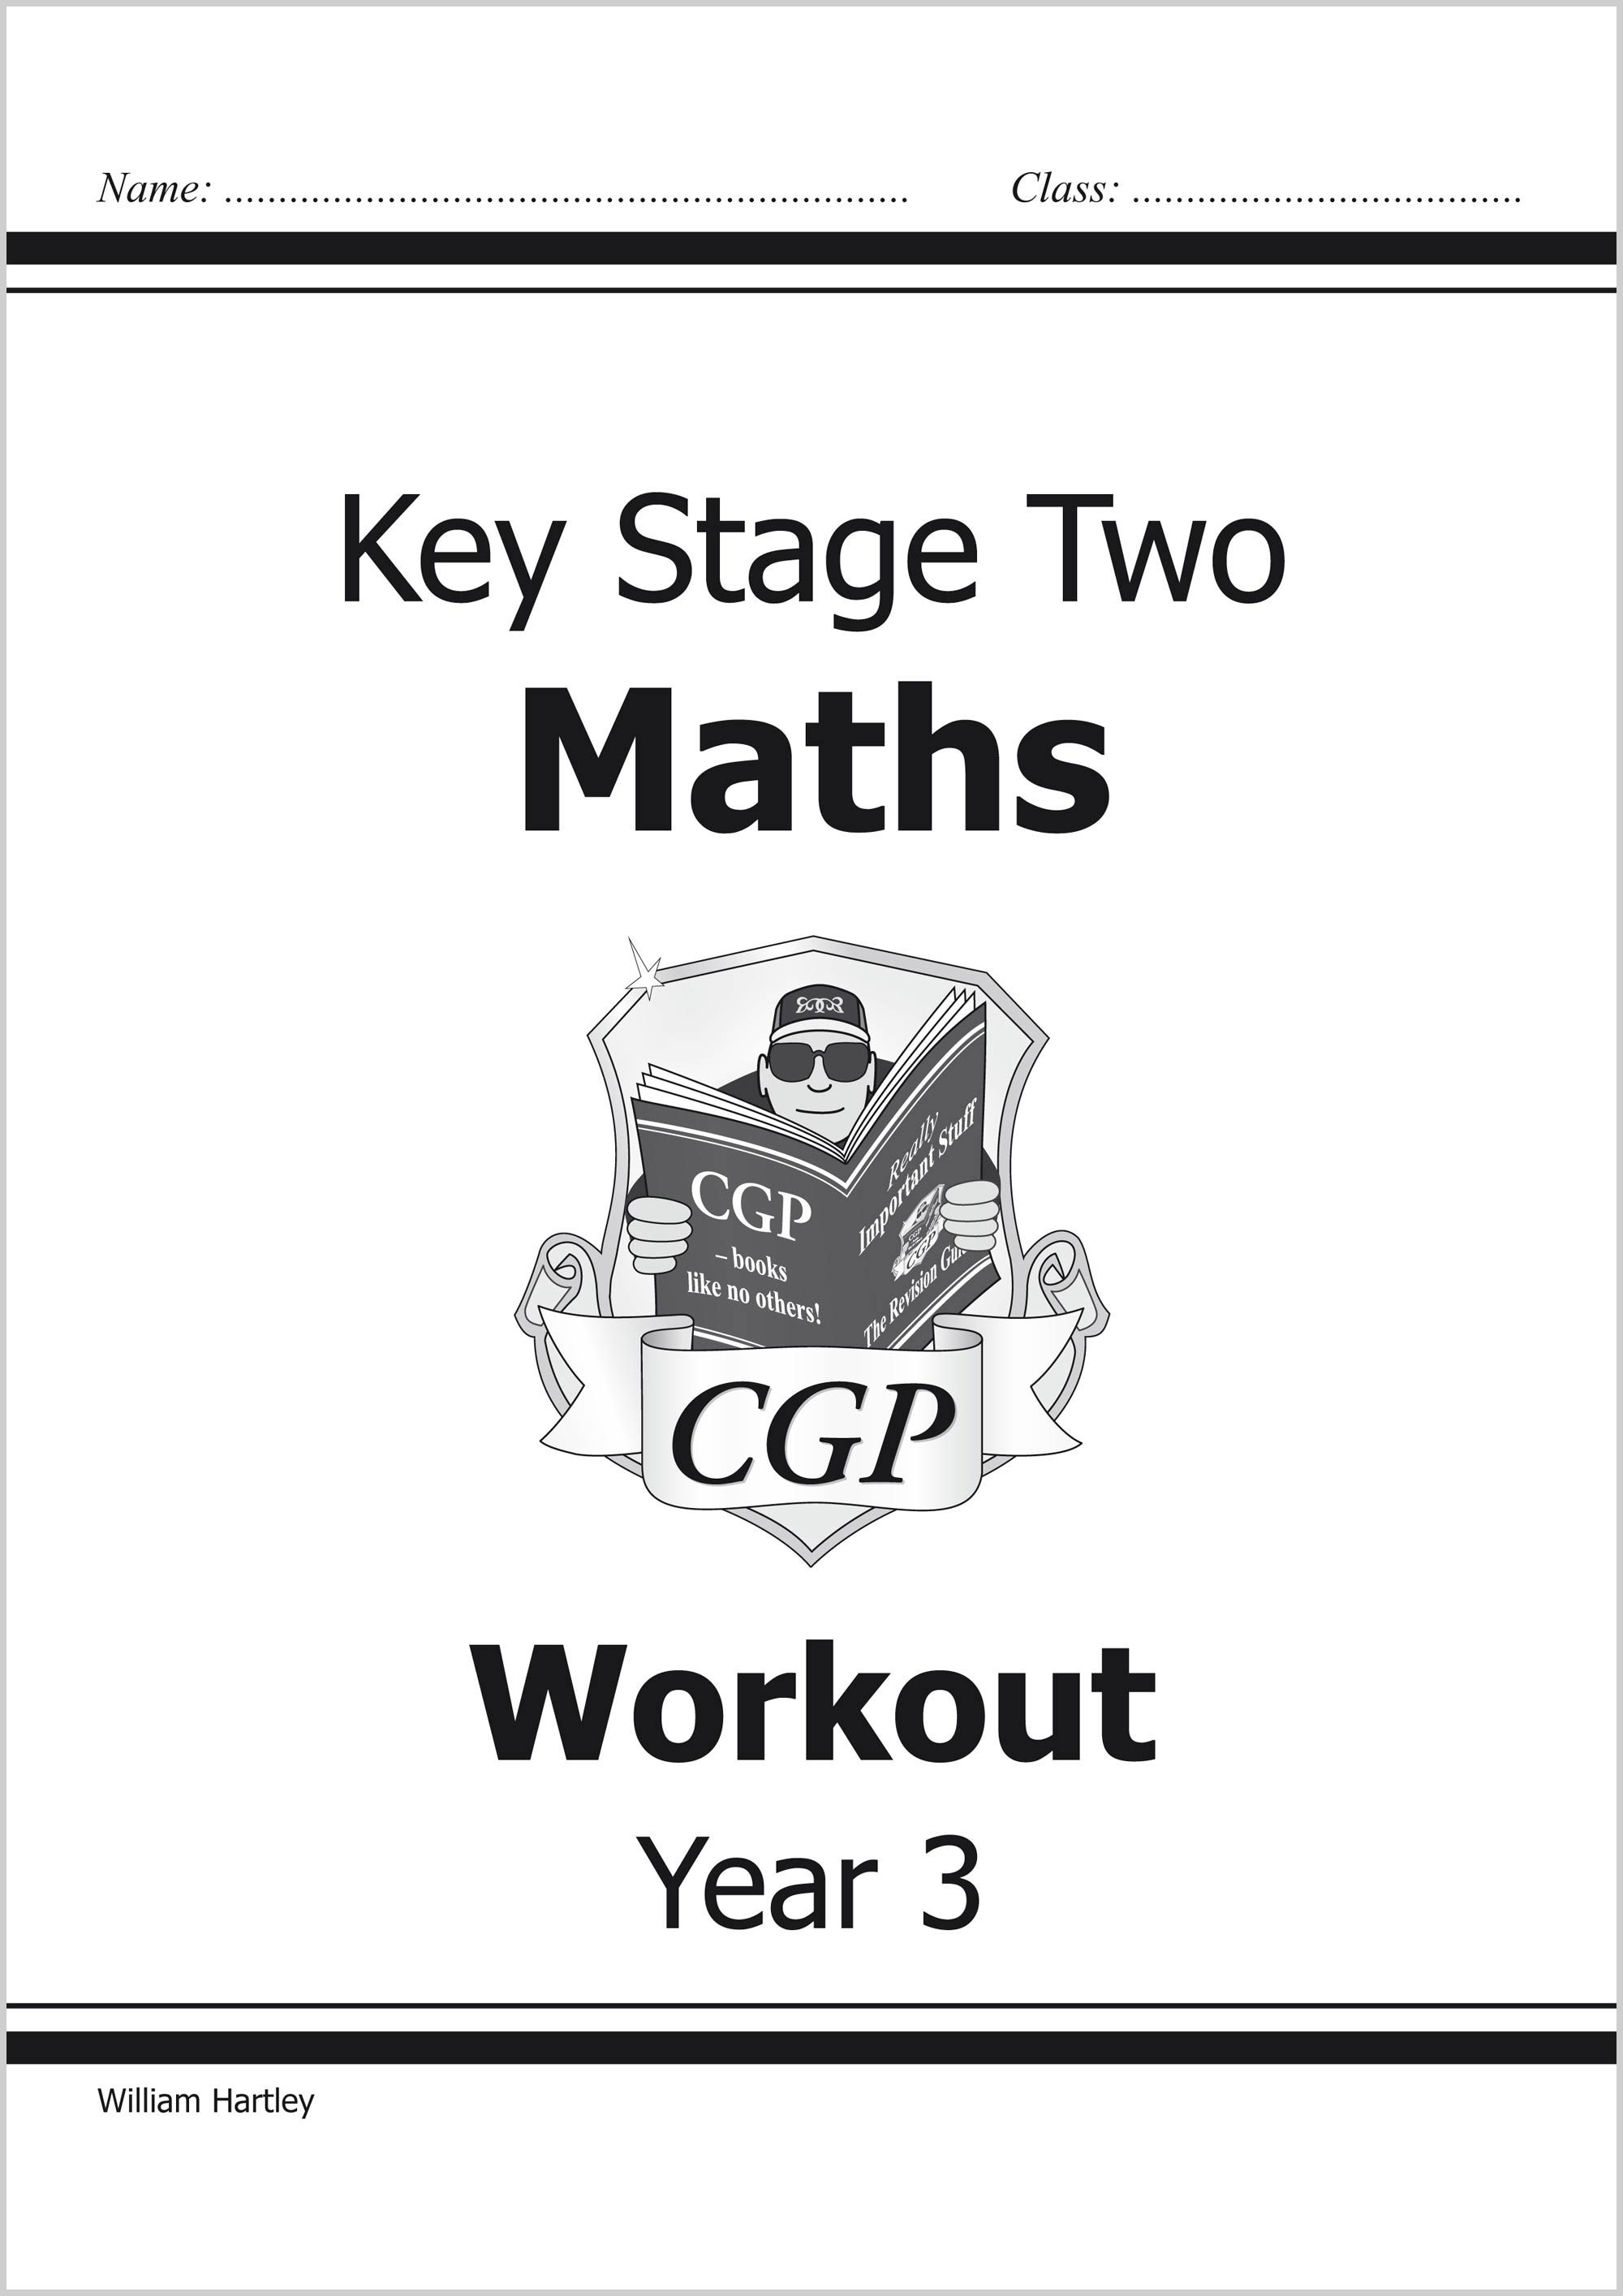 M3W21 - KS2 Maths Workout - Year 3